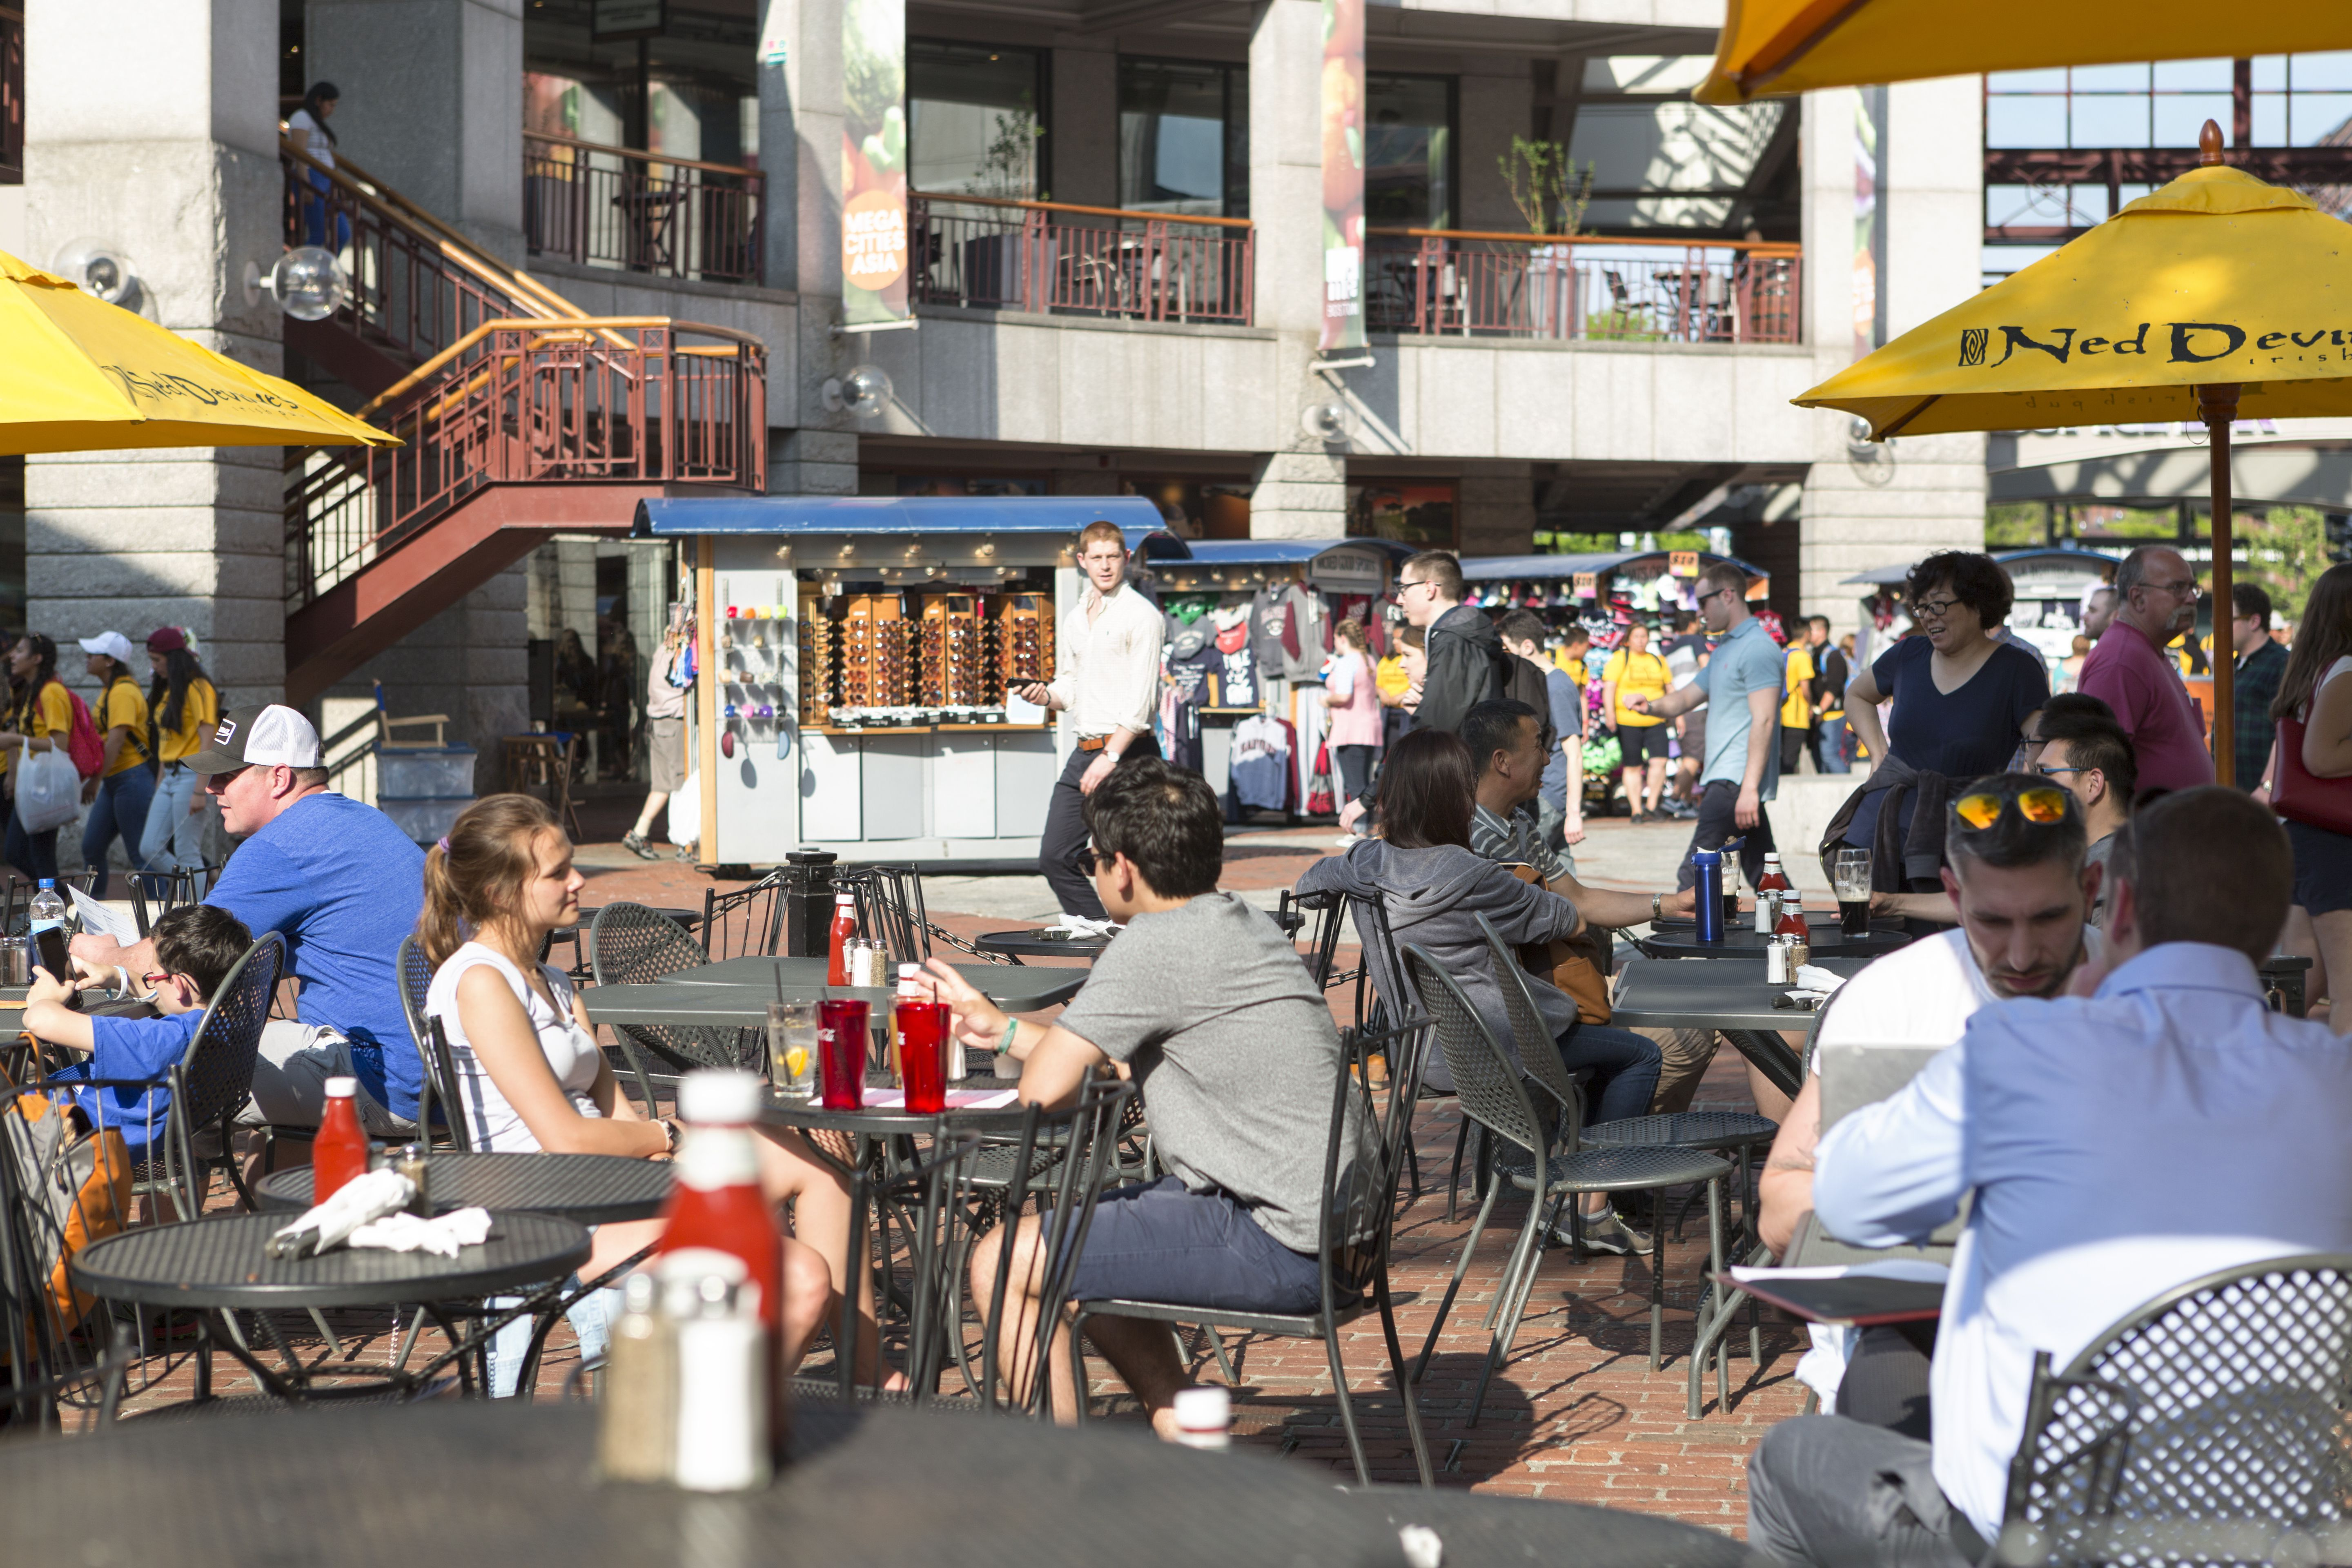 Locals eating at food stalls outside Quincy Market